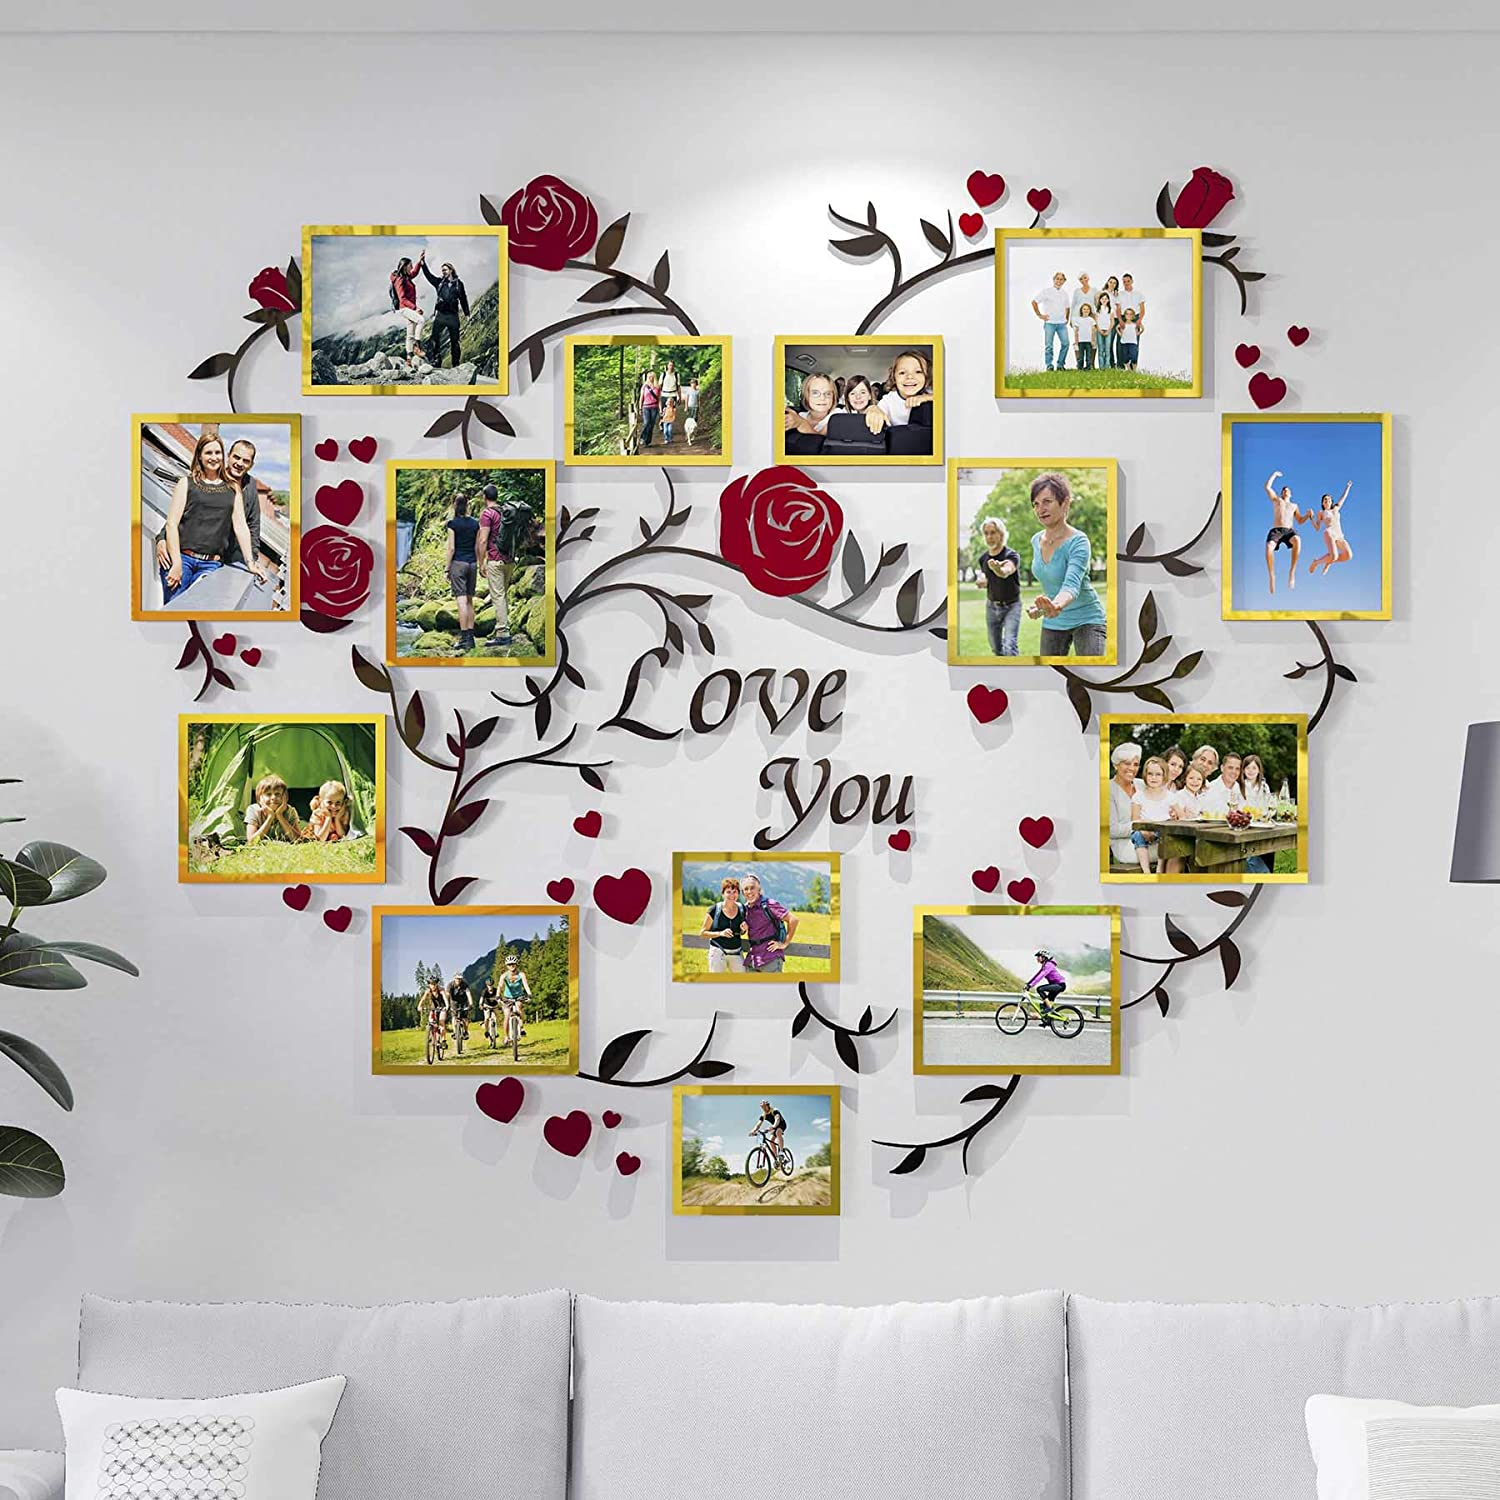 DecorSmart Heart Family Tree Wall Decor Picture Frame Collage Golden Removable 3D DIY Acrylic Wall Stickers for Living Room with Rose and Quote Love You